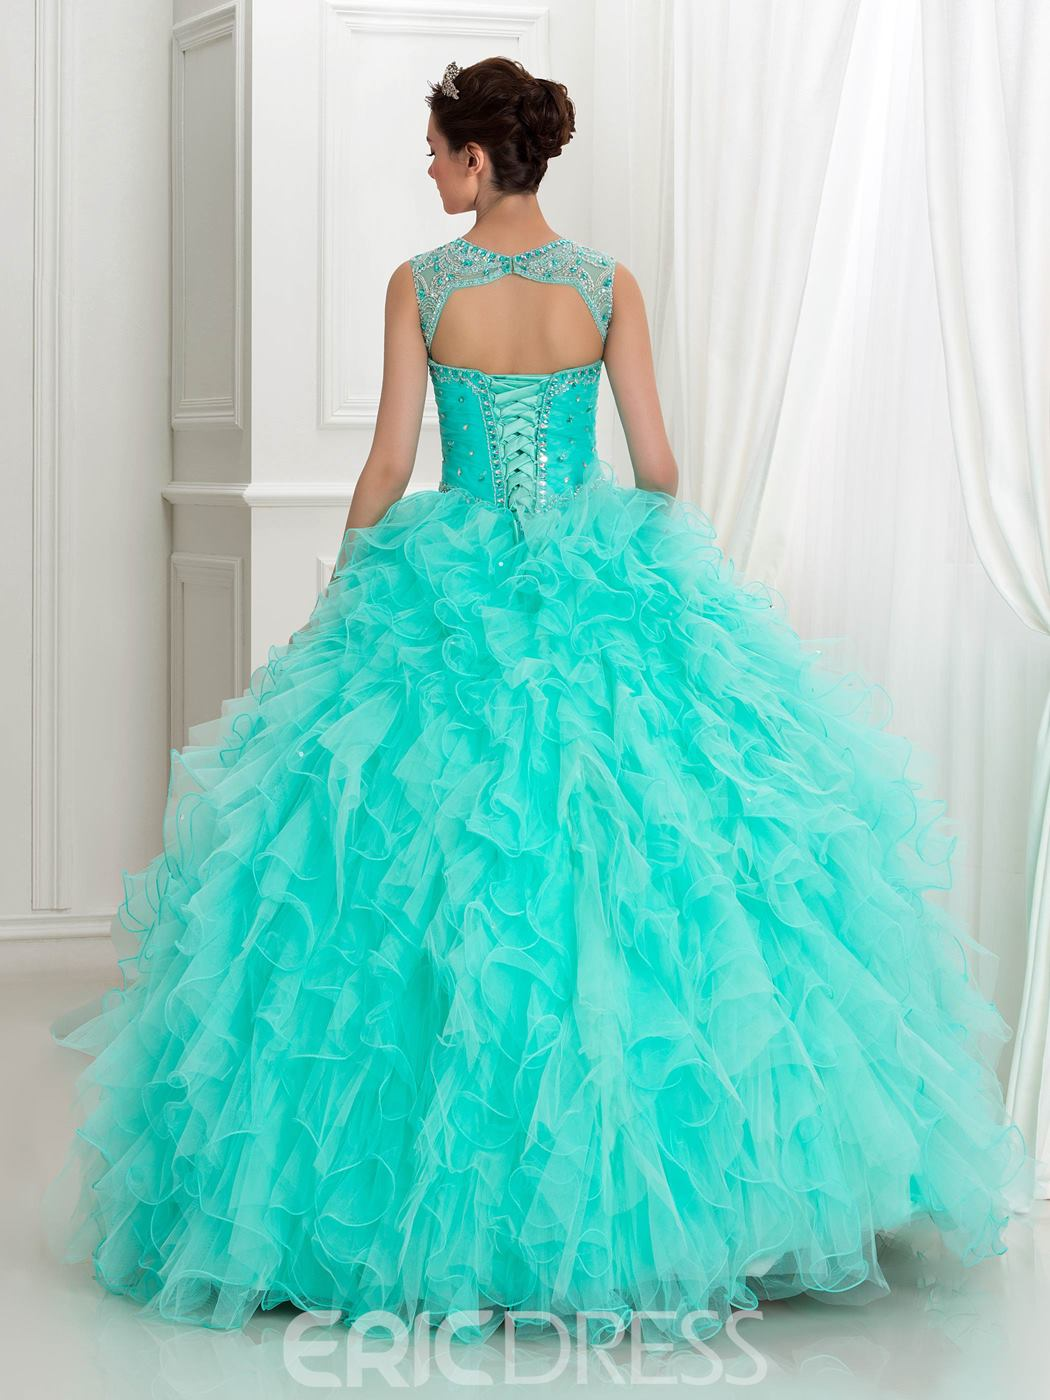 Ericdress Cascading Ruffles Beading Hollow Lace-Up Ball Gown Quinceanera Dress